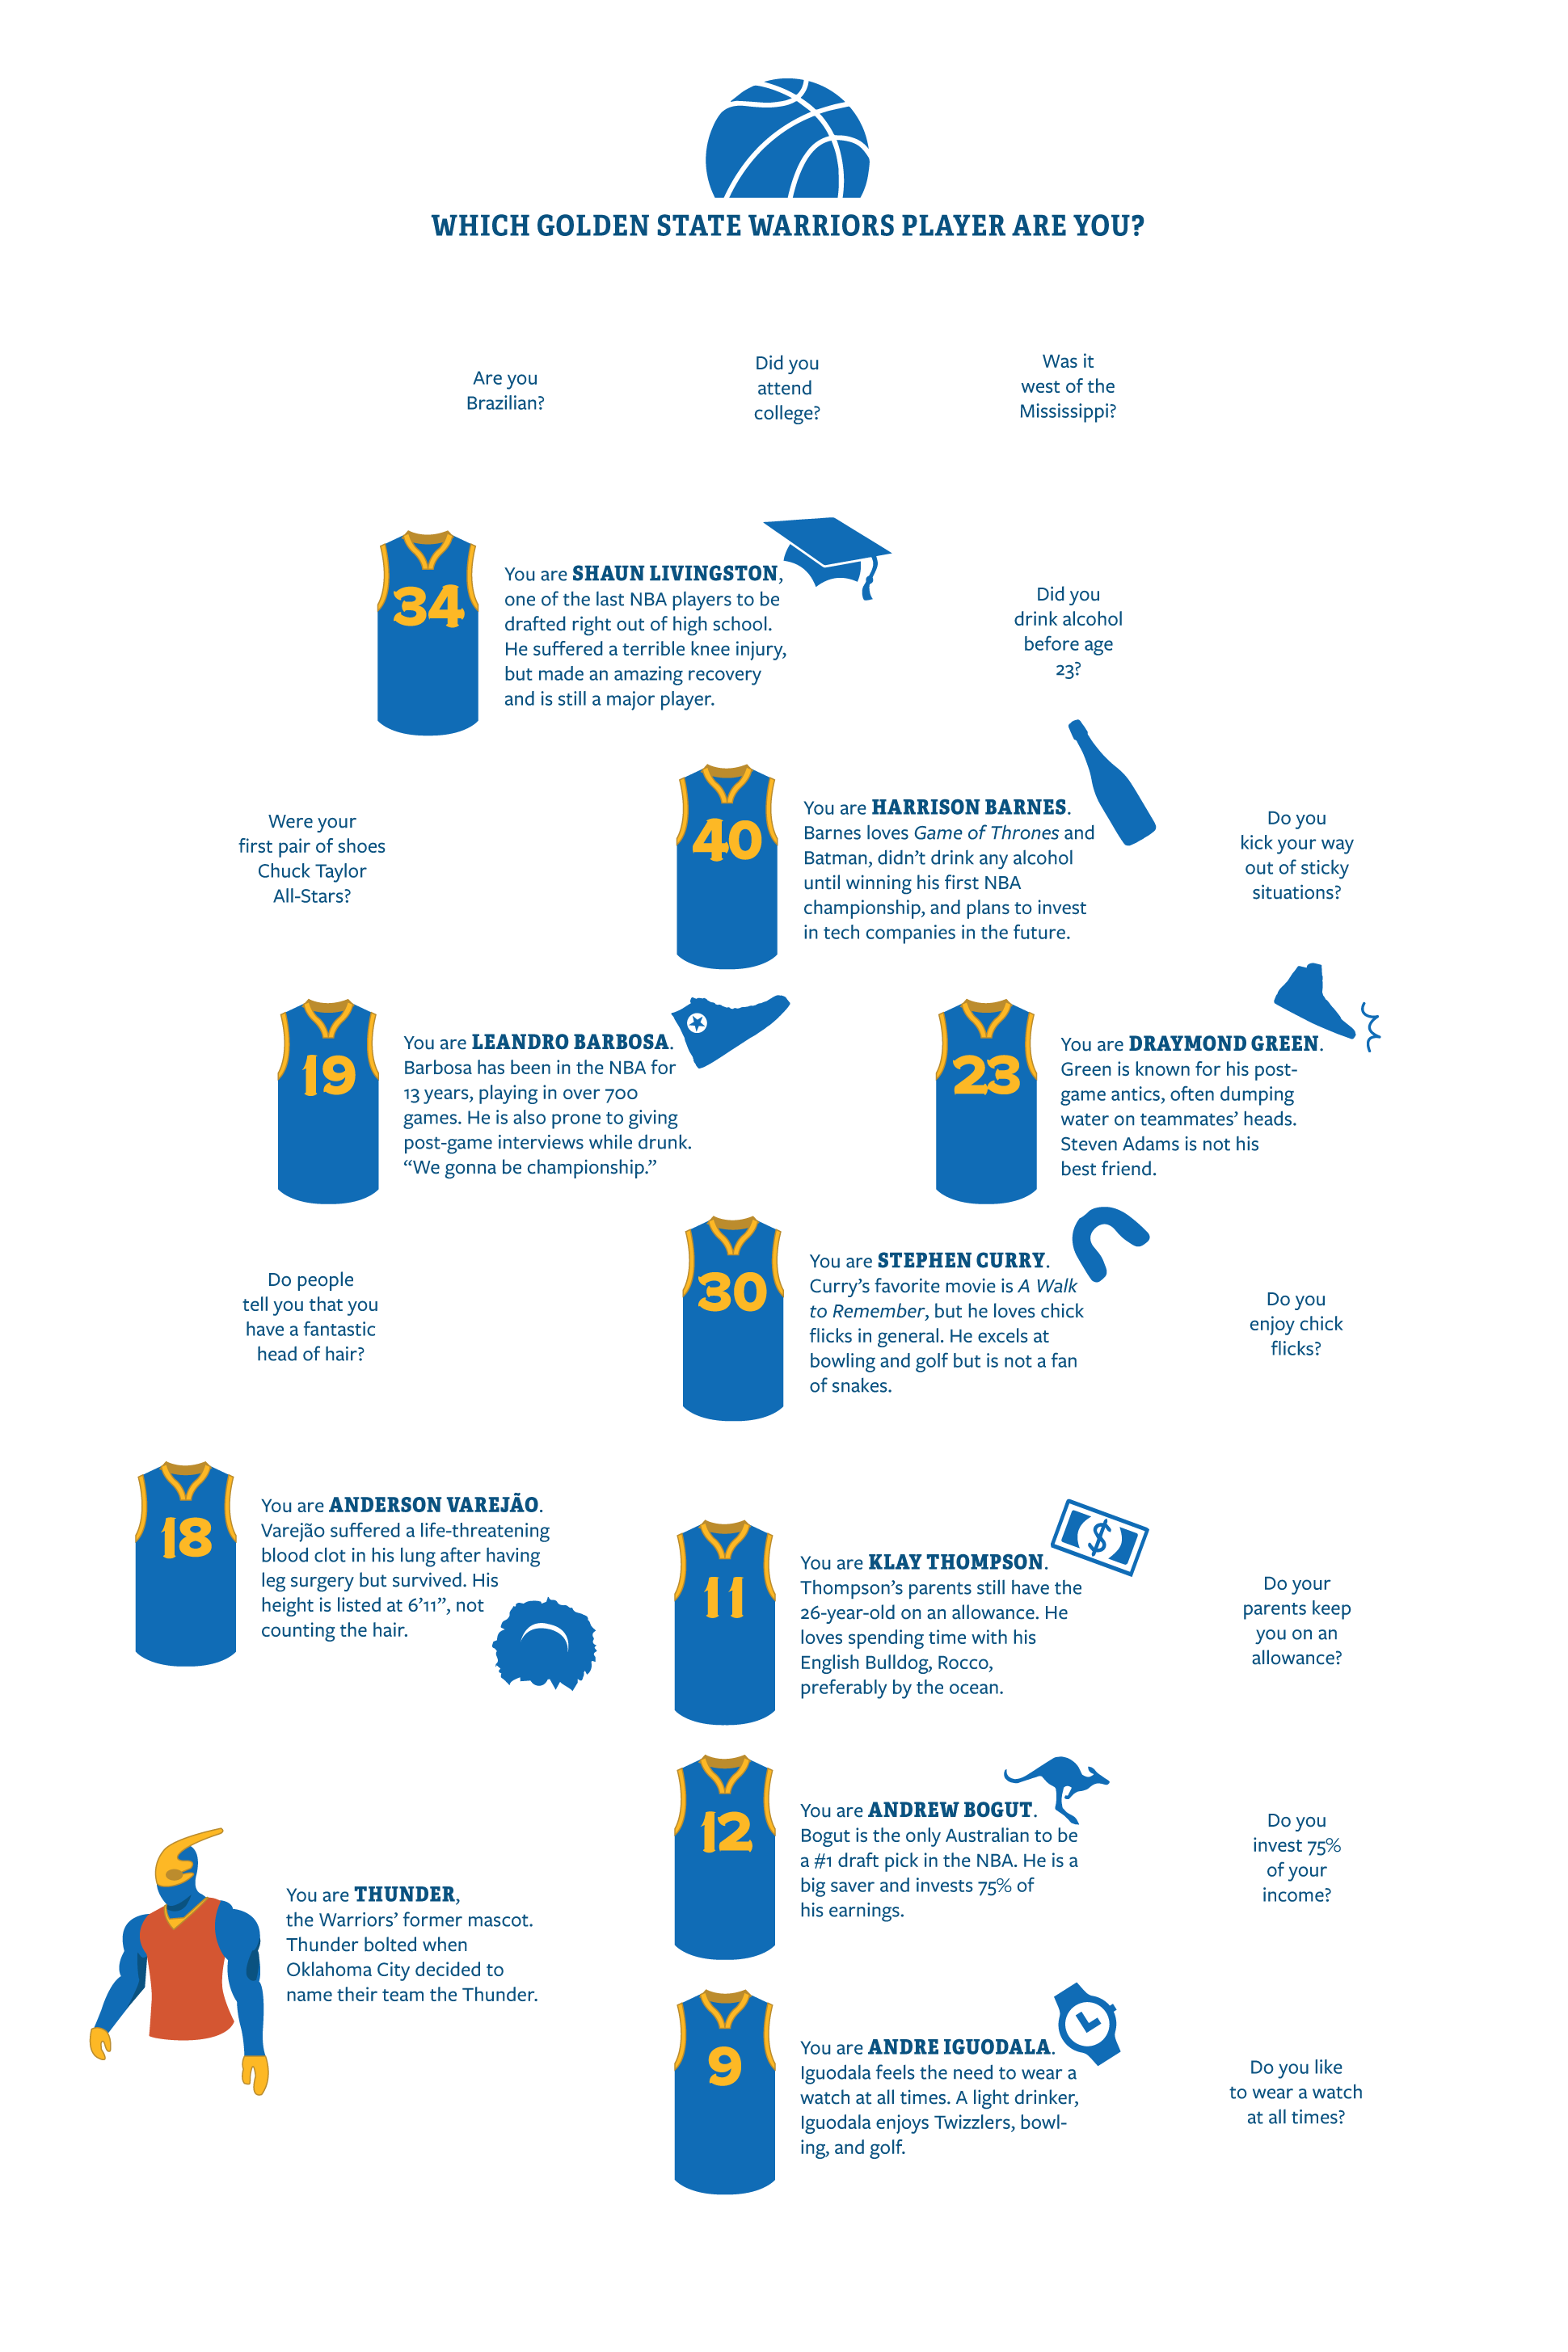 Which Golden State Player Are You?